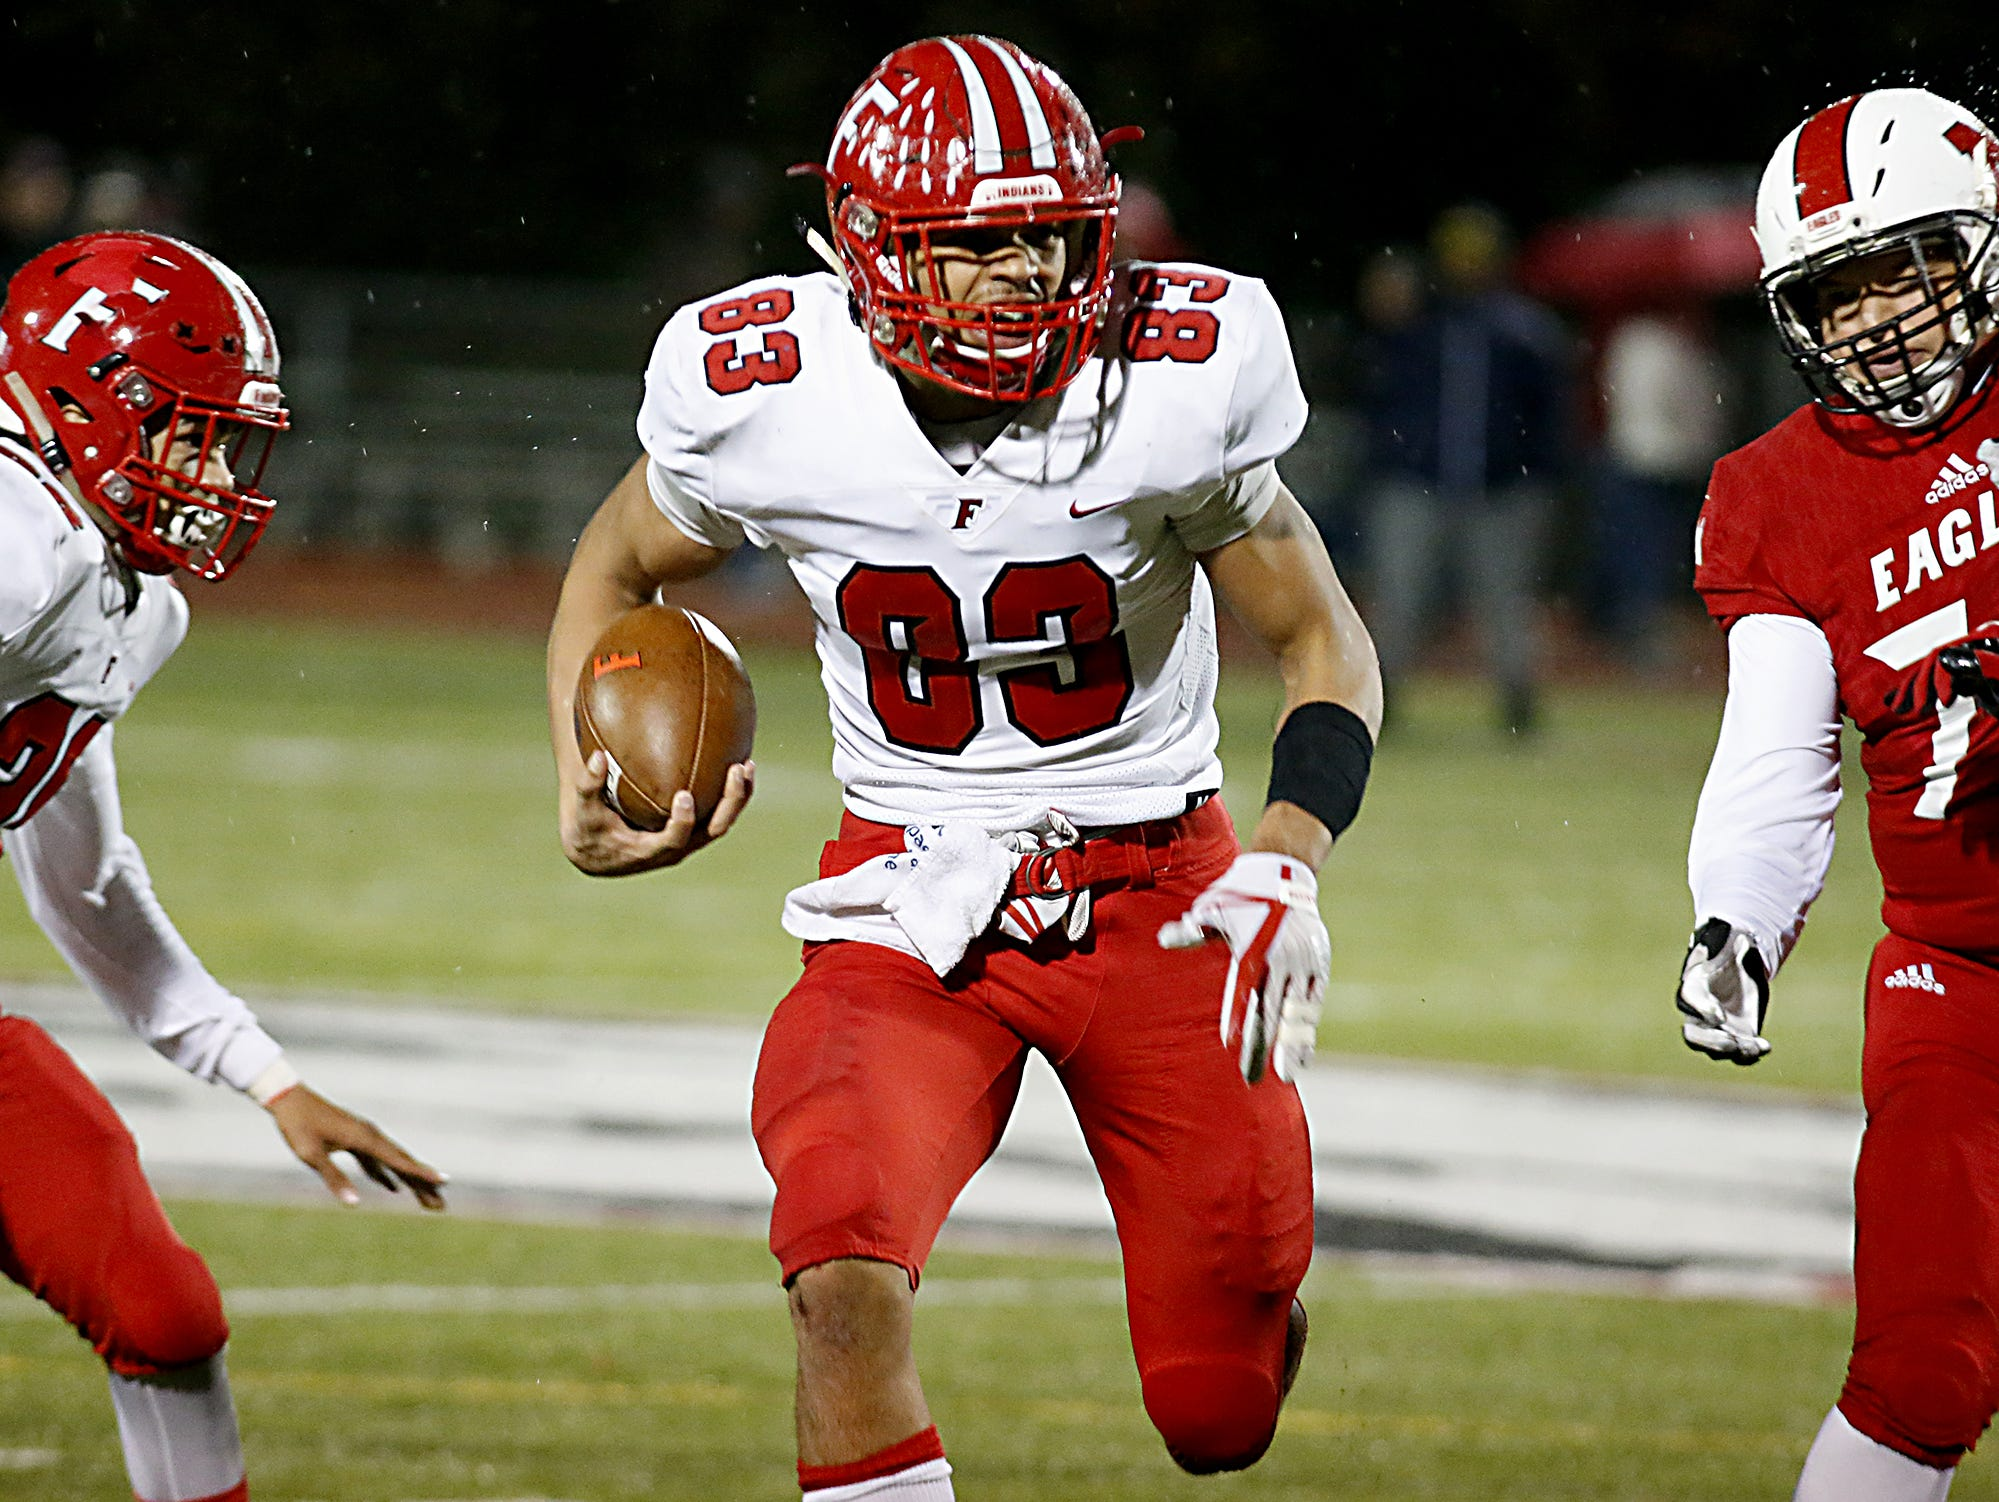 Fairfield's Erick All runs for a touchdown against Milford during their Division I playoff game at Eagle Stadium in Milford Friday, Nov. 2, 2018.